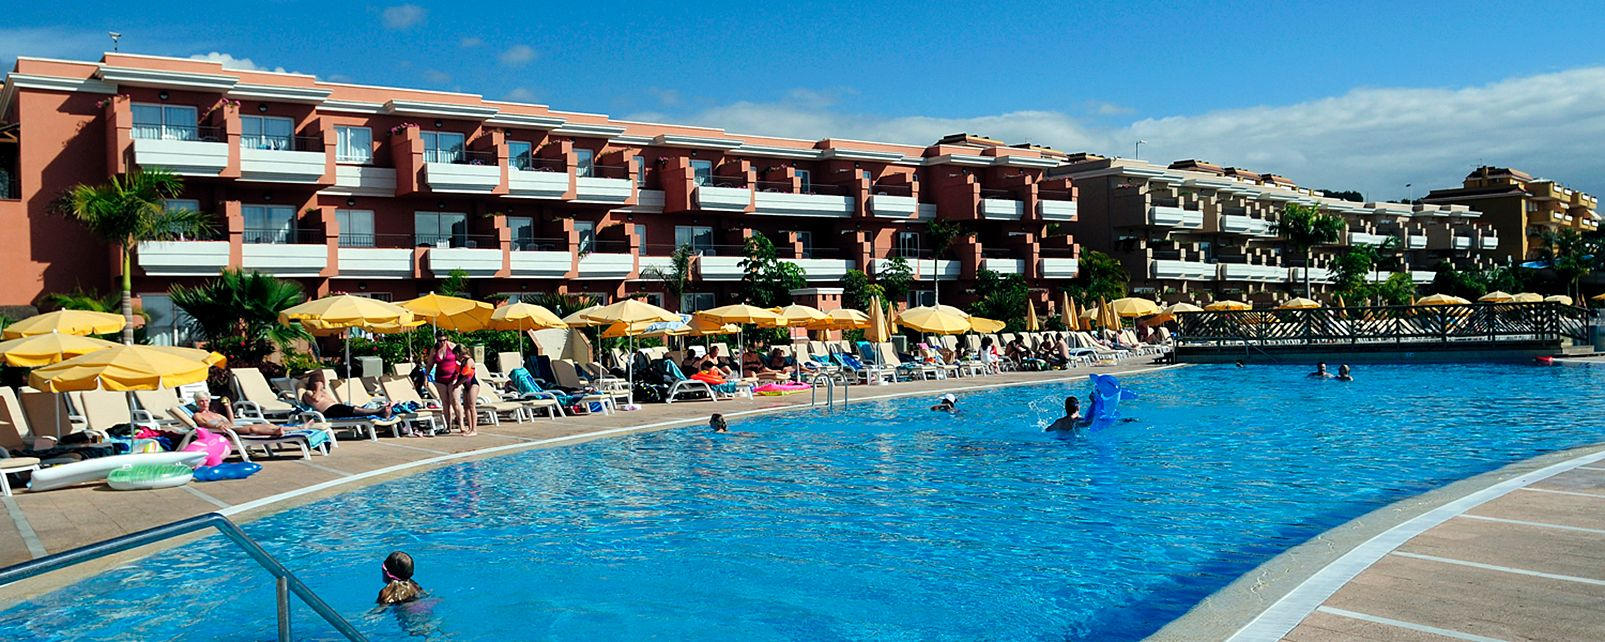 Hotel be live family costa los gigantes puerto de santiago spanien - Hotel be live family costa los gigantes puerto de santiago ...